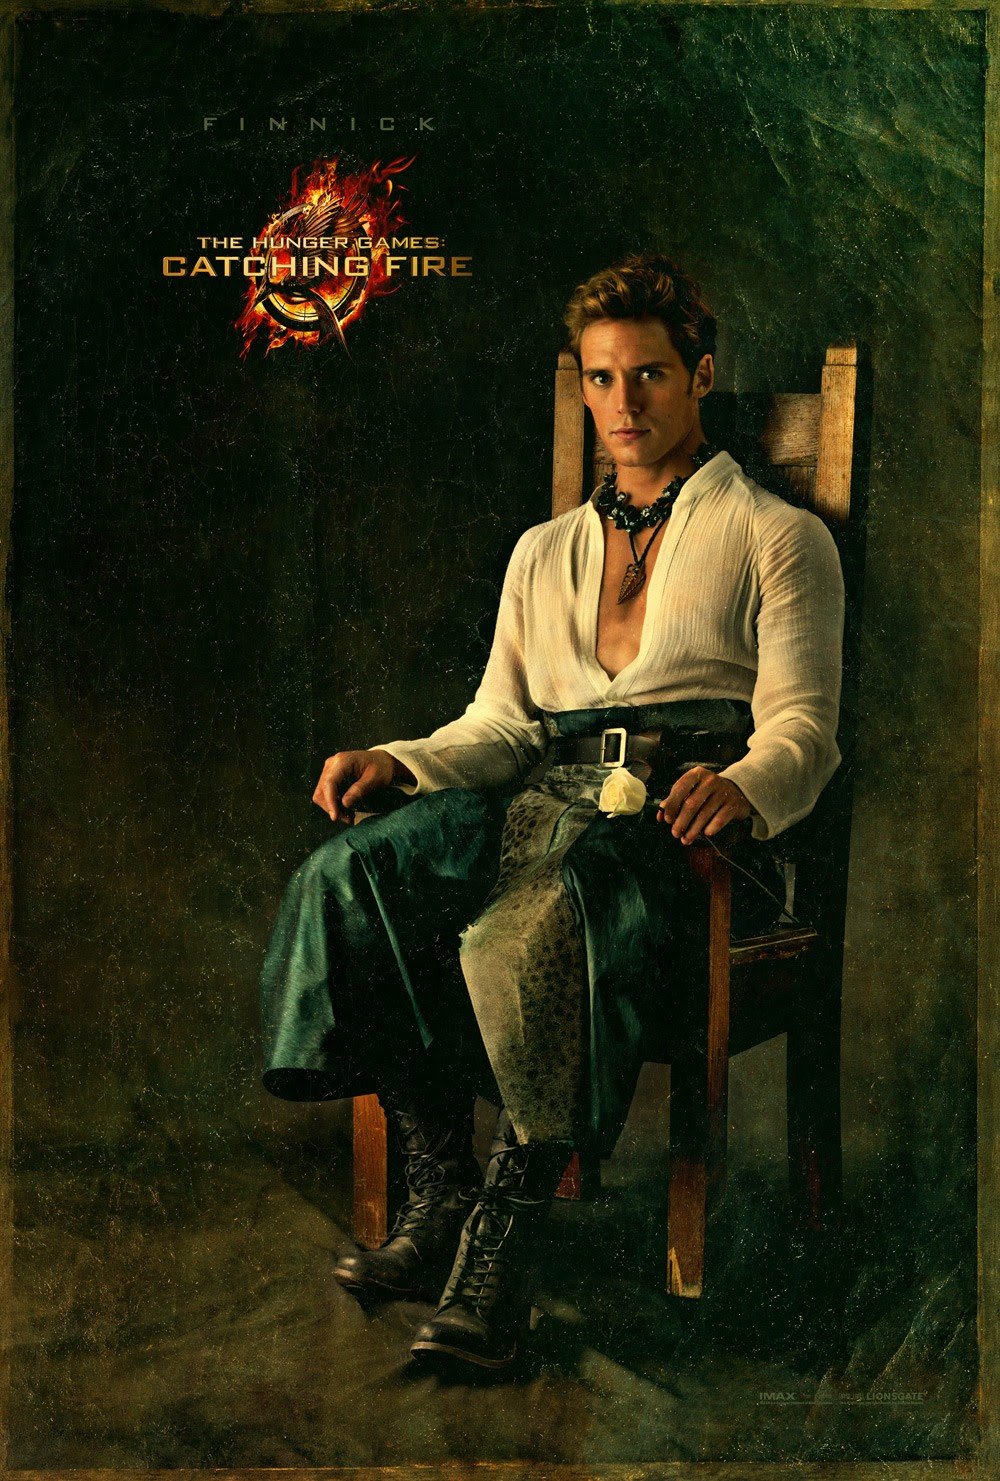 http://bigfanboy.com/wp/wp-content/uploads/2013/03/The-Hunger-Games-Catching-Fire-Poster-013-Finnick.jpg